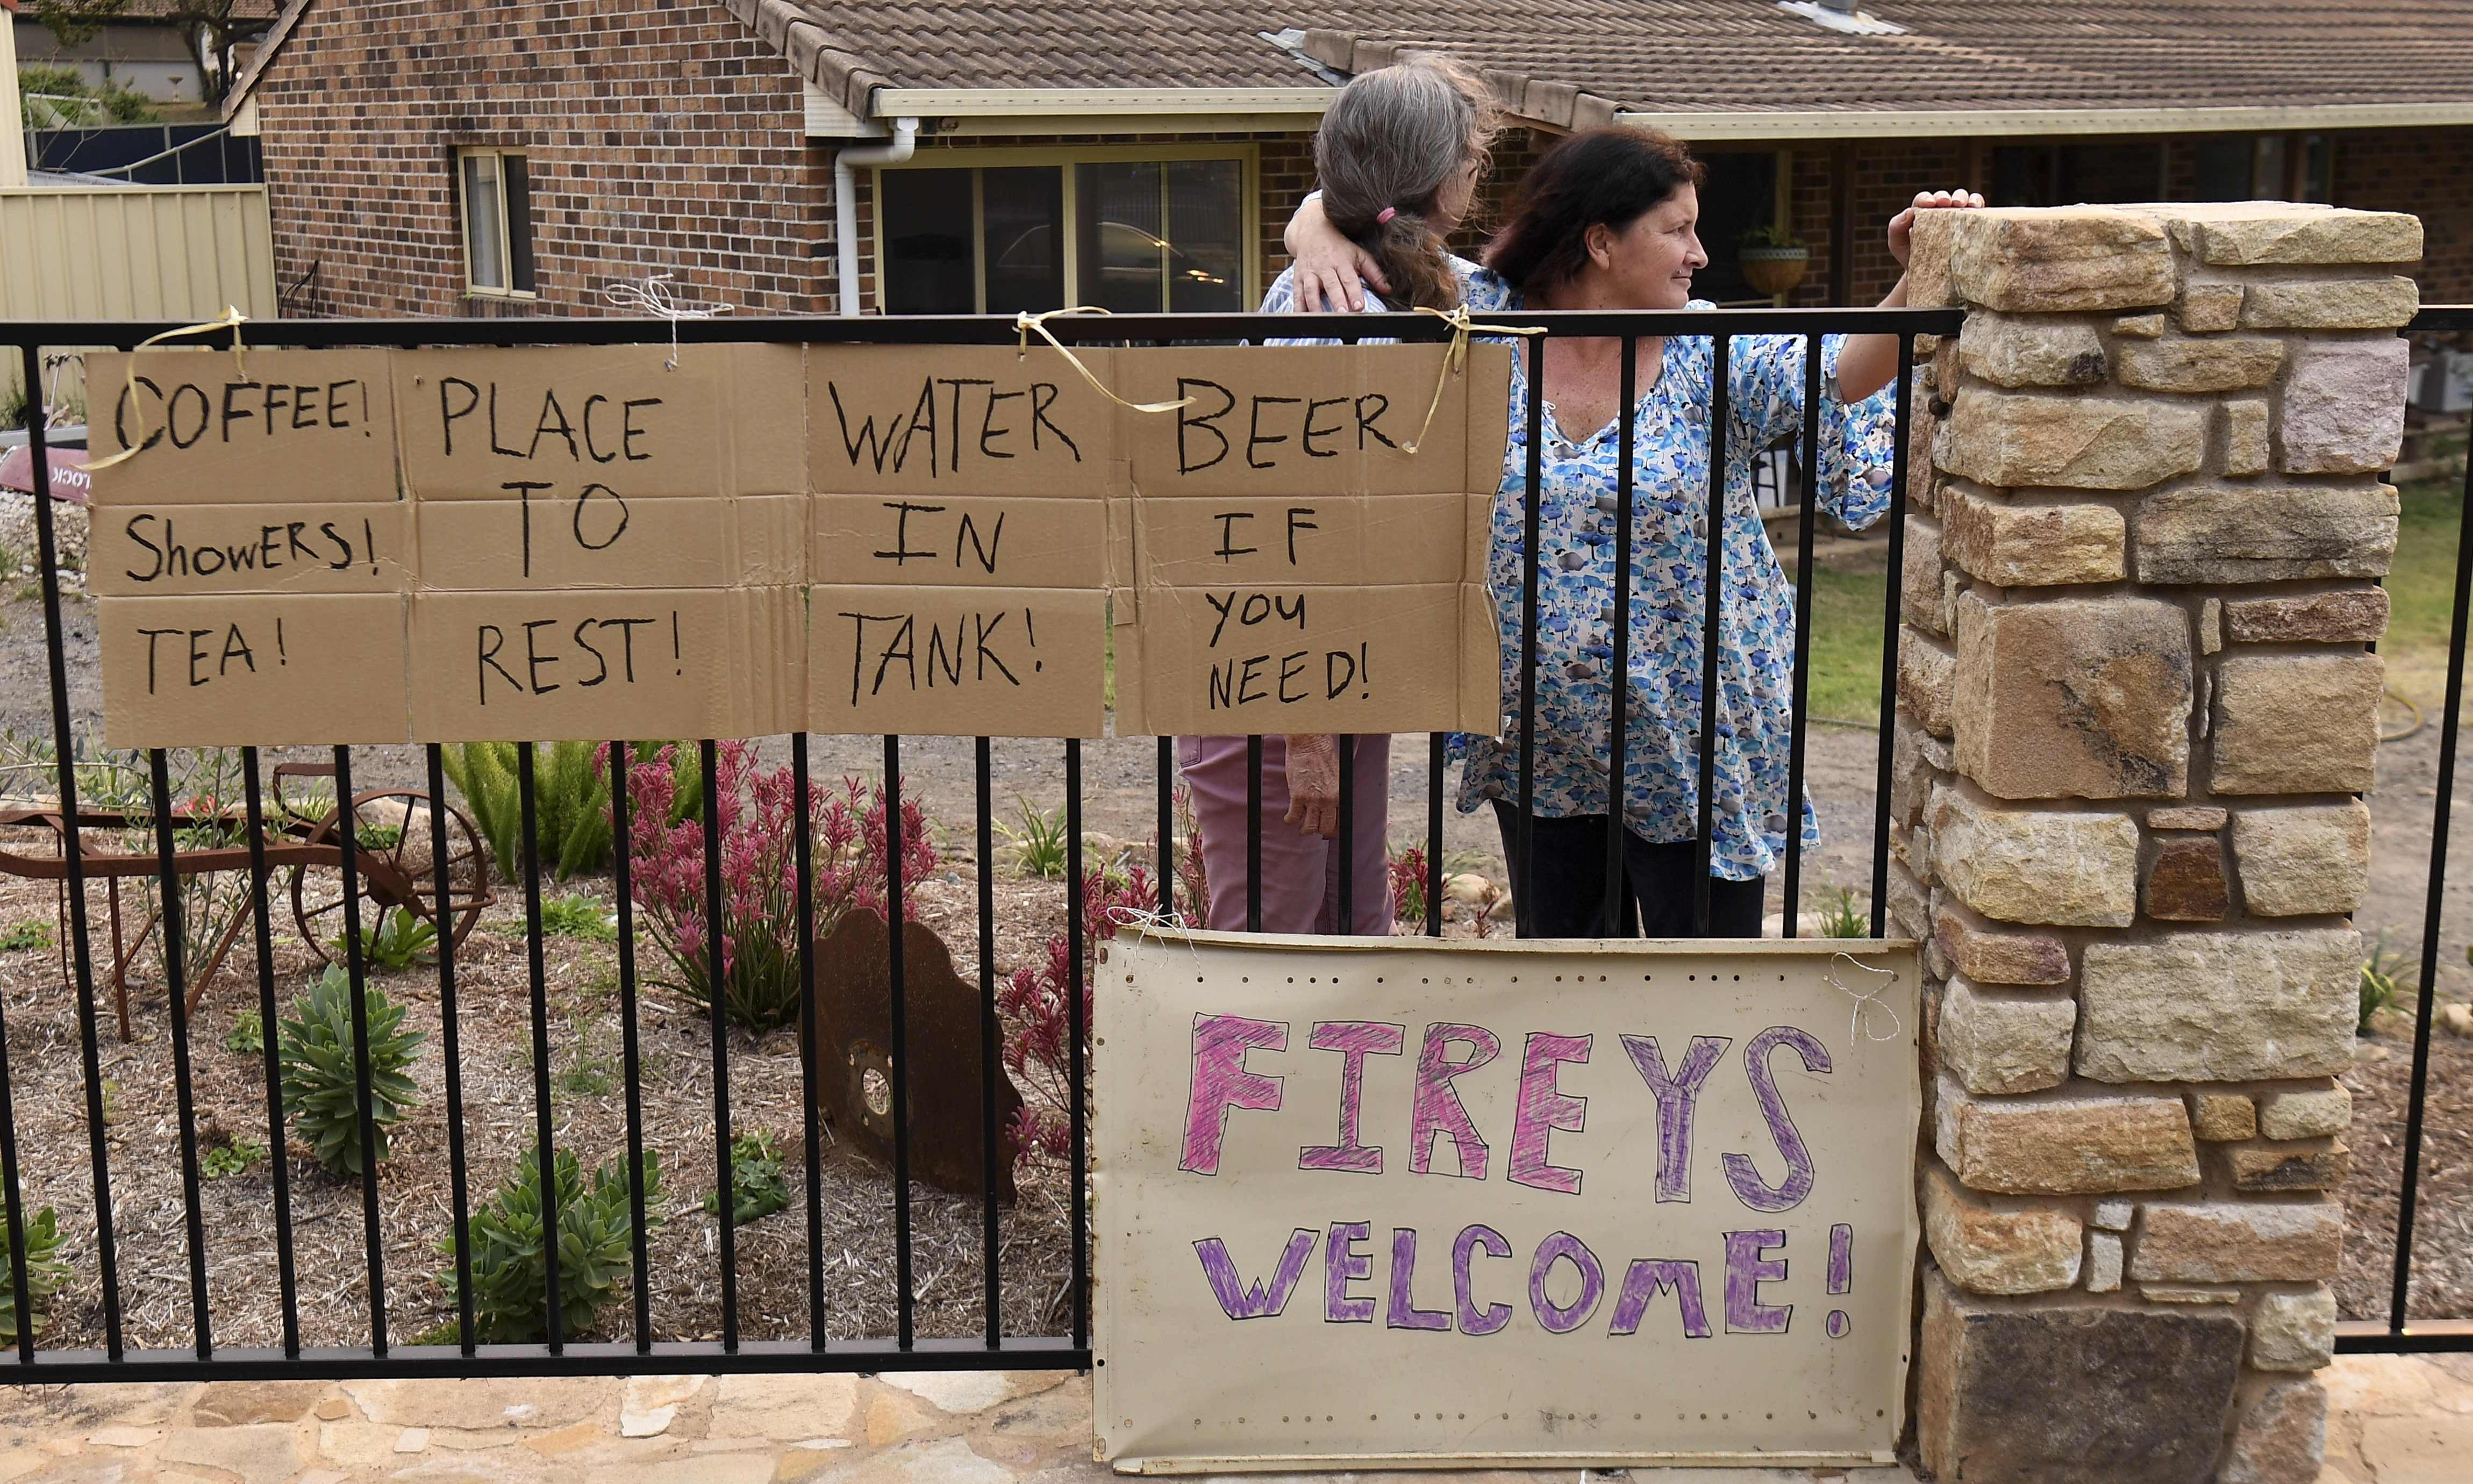 'I'm able to help so I will': community spirit shines through during bushfire crisis